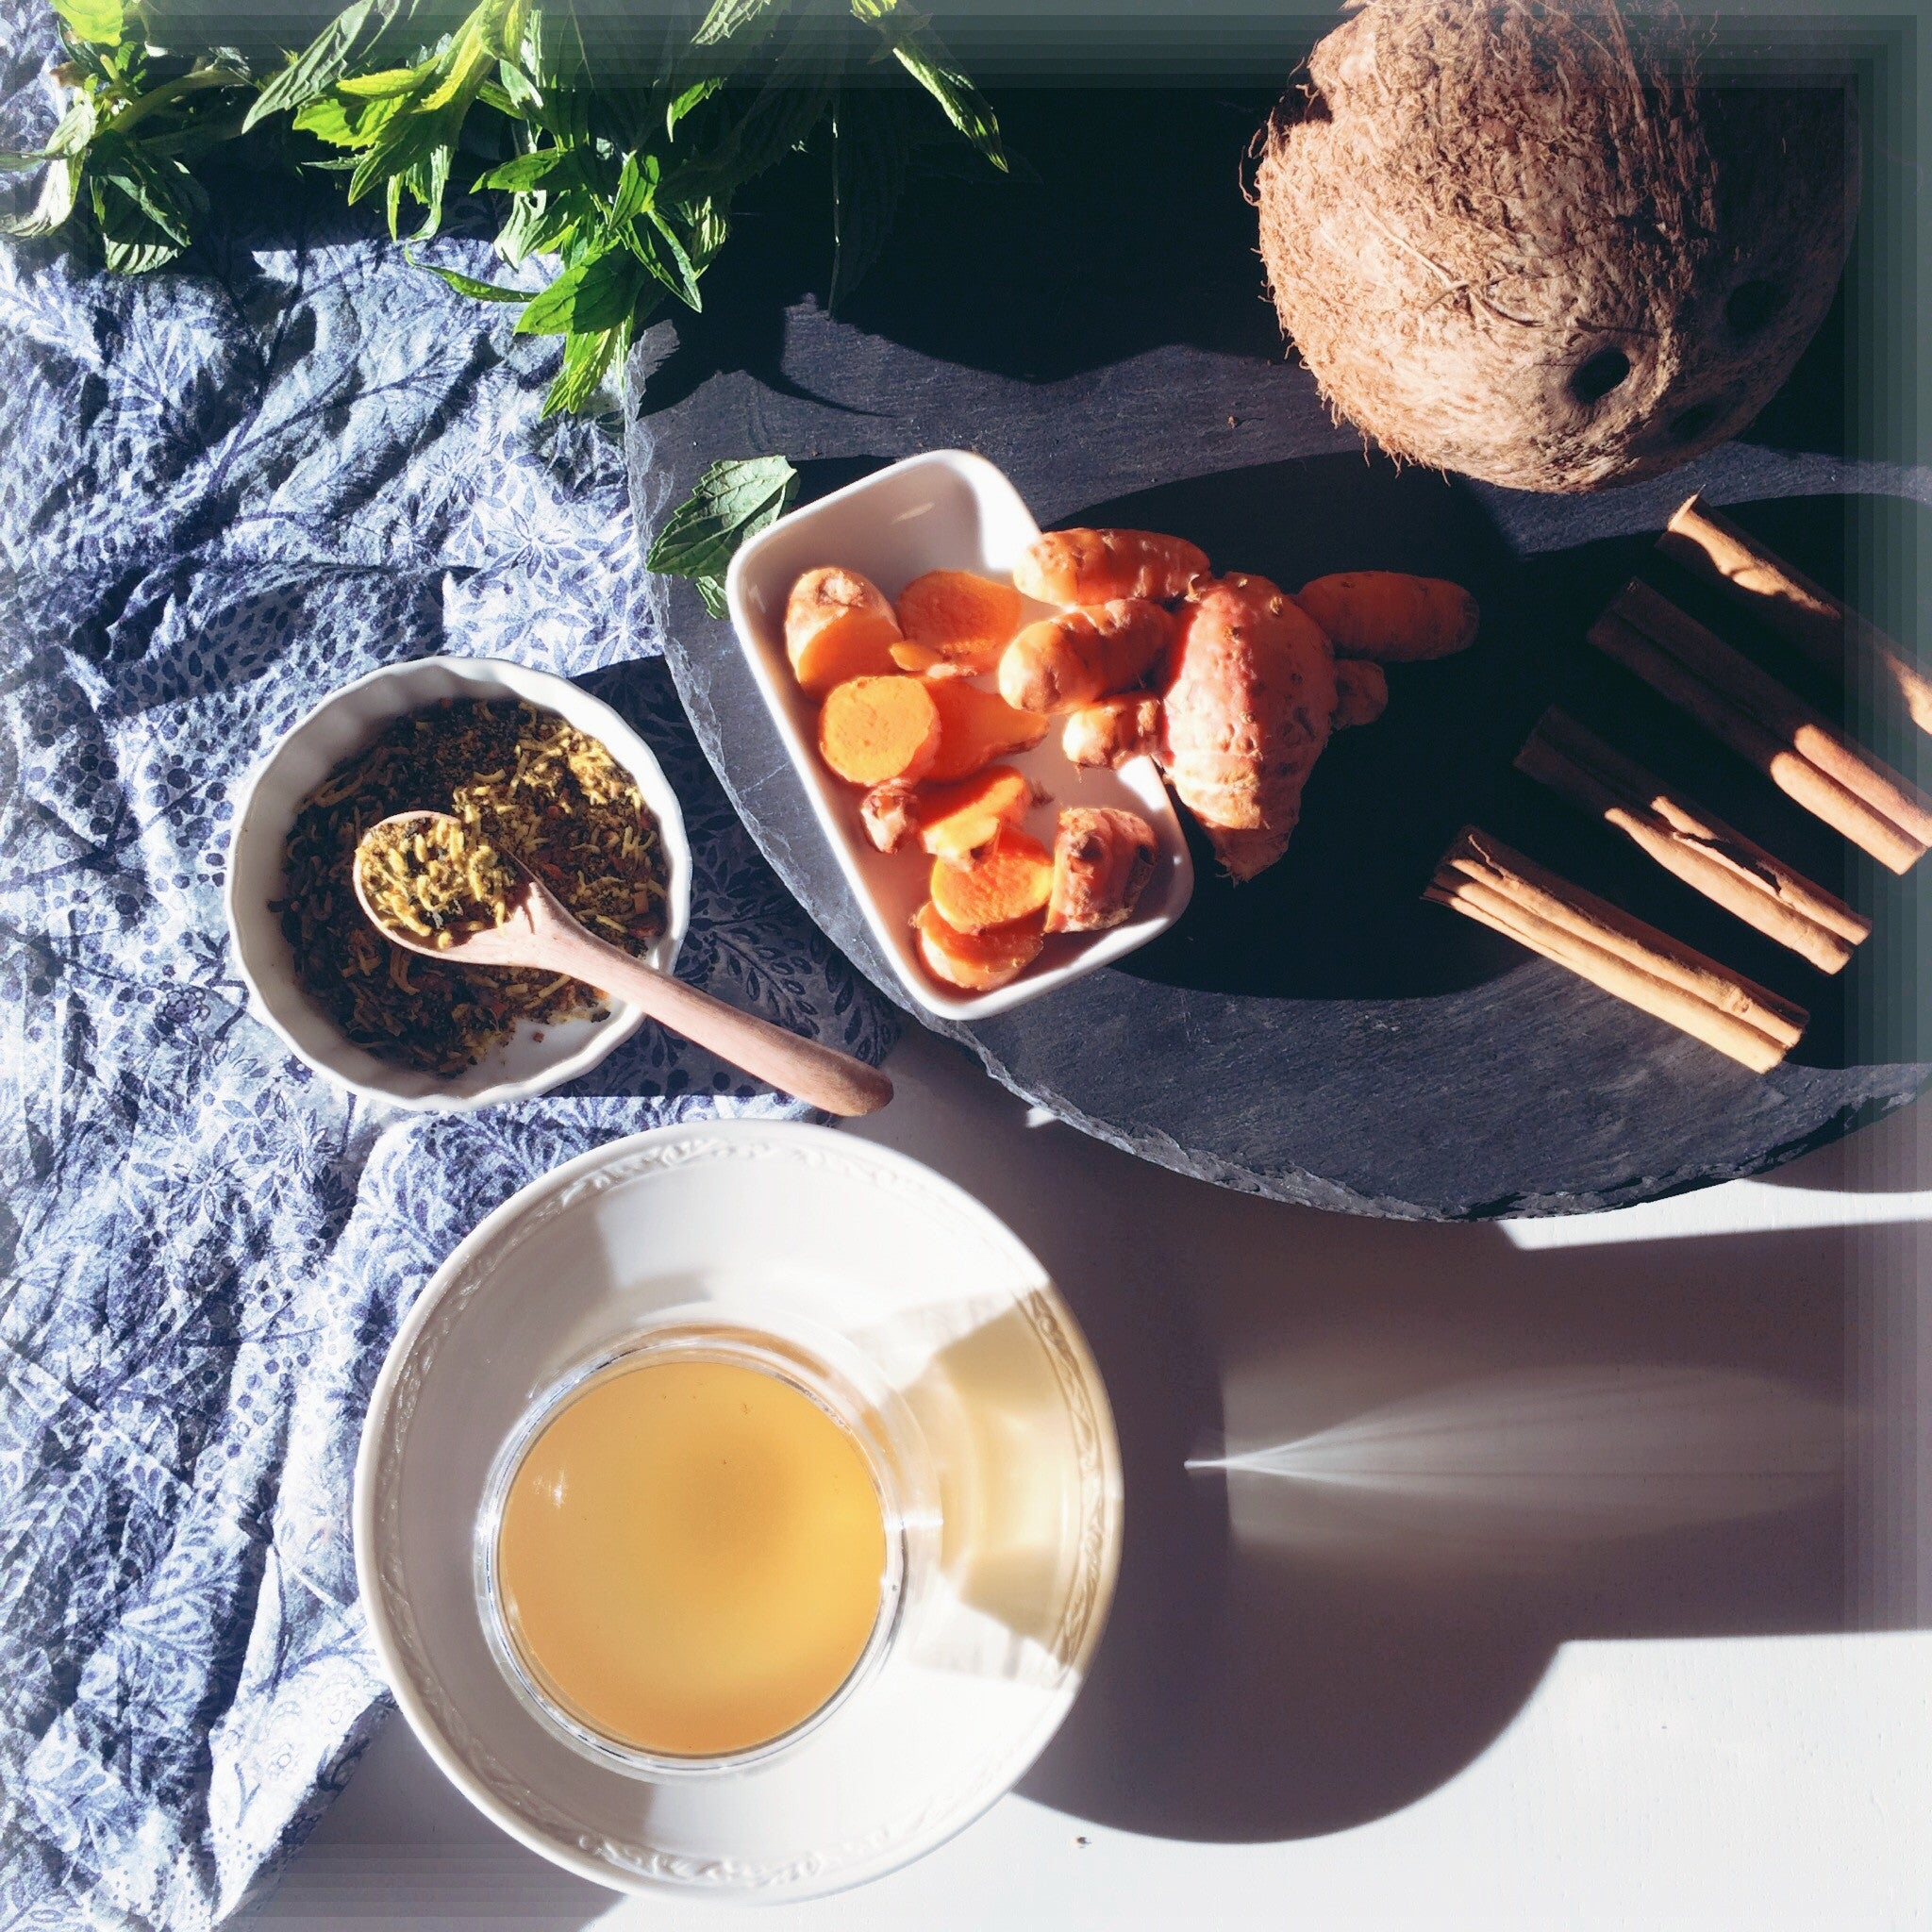 Spiced Tea No.5 - Royal Thailand 60g [Golden Turmeric, Coconut & Mint] - Taste Kaleidoscope